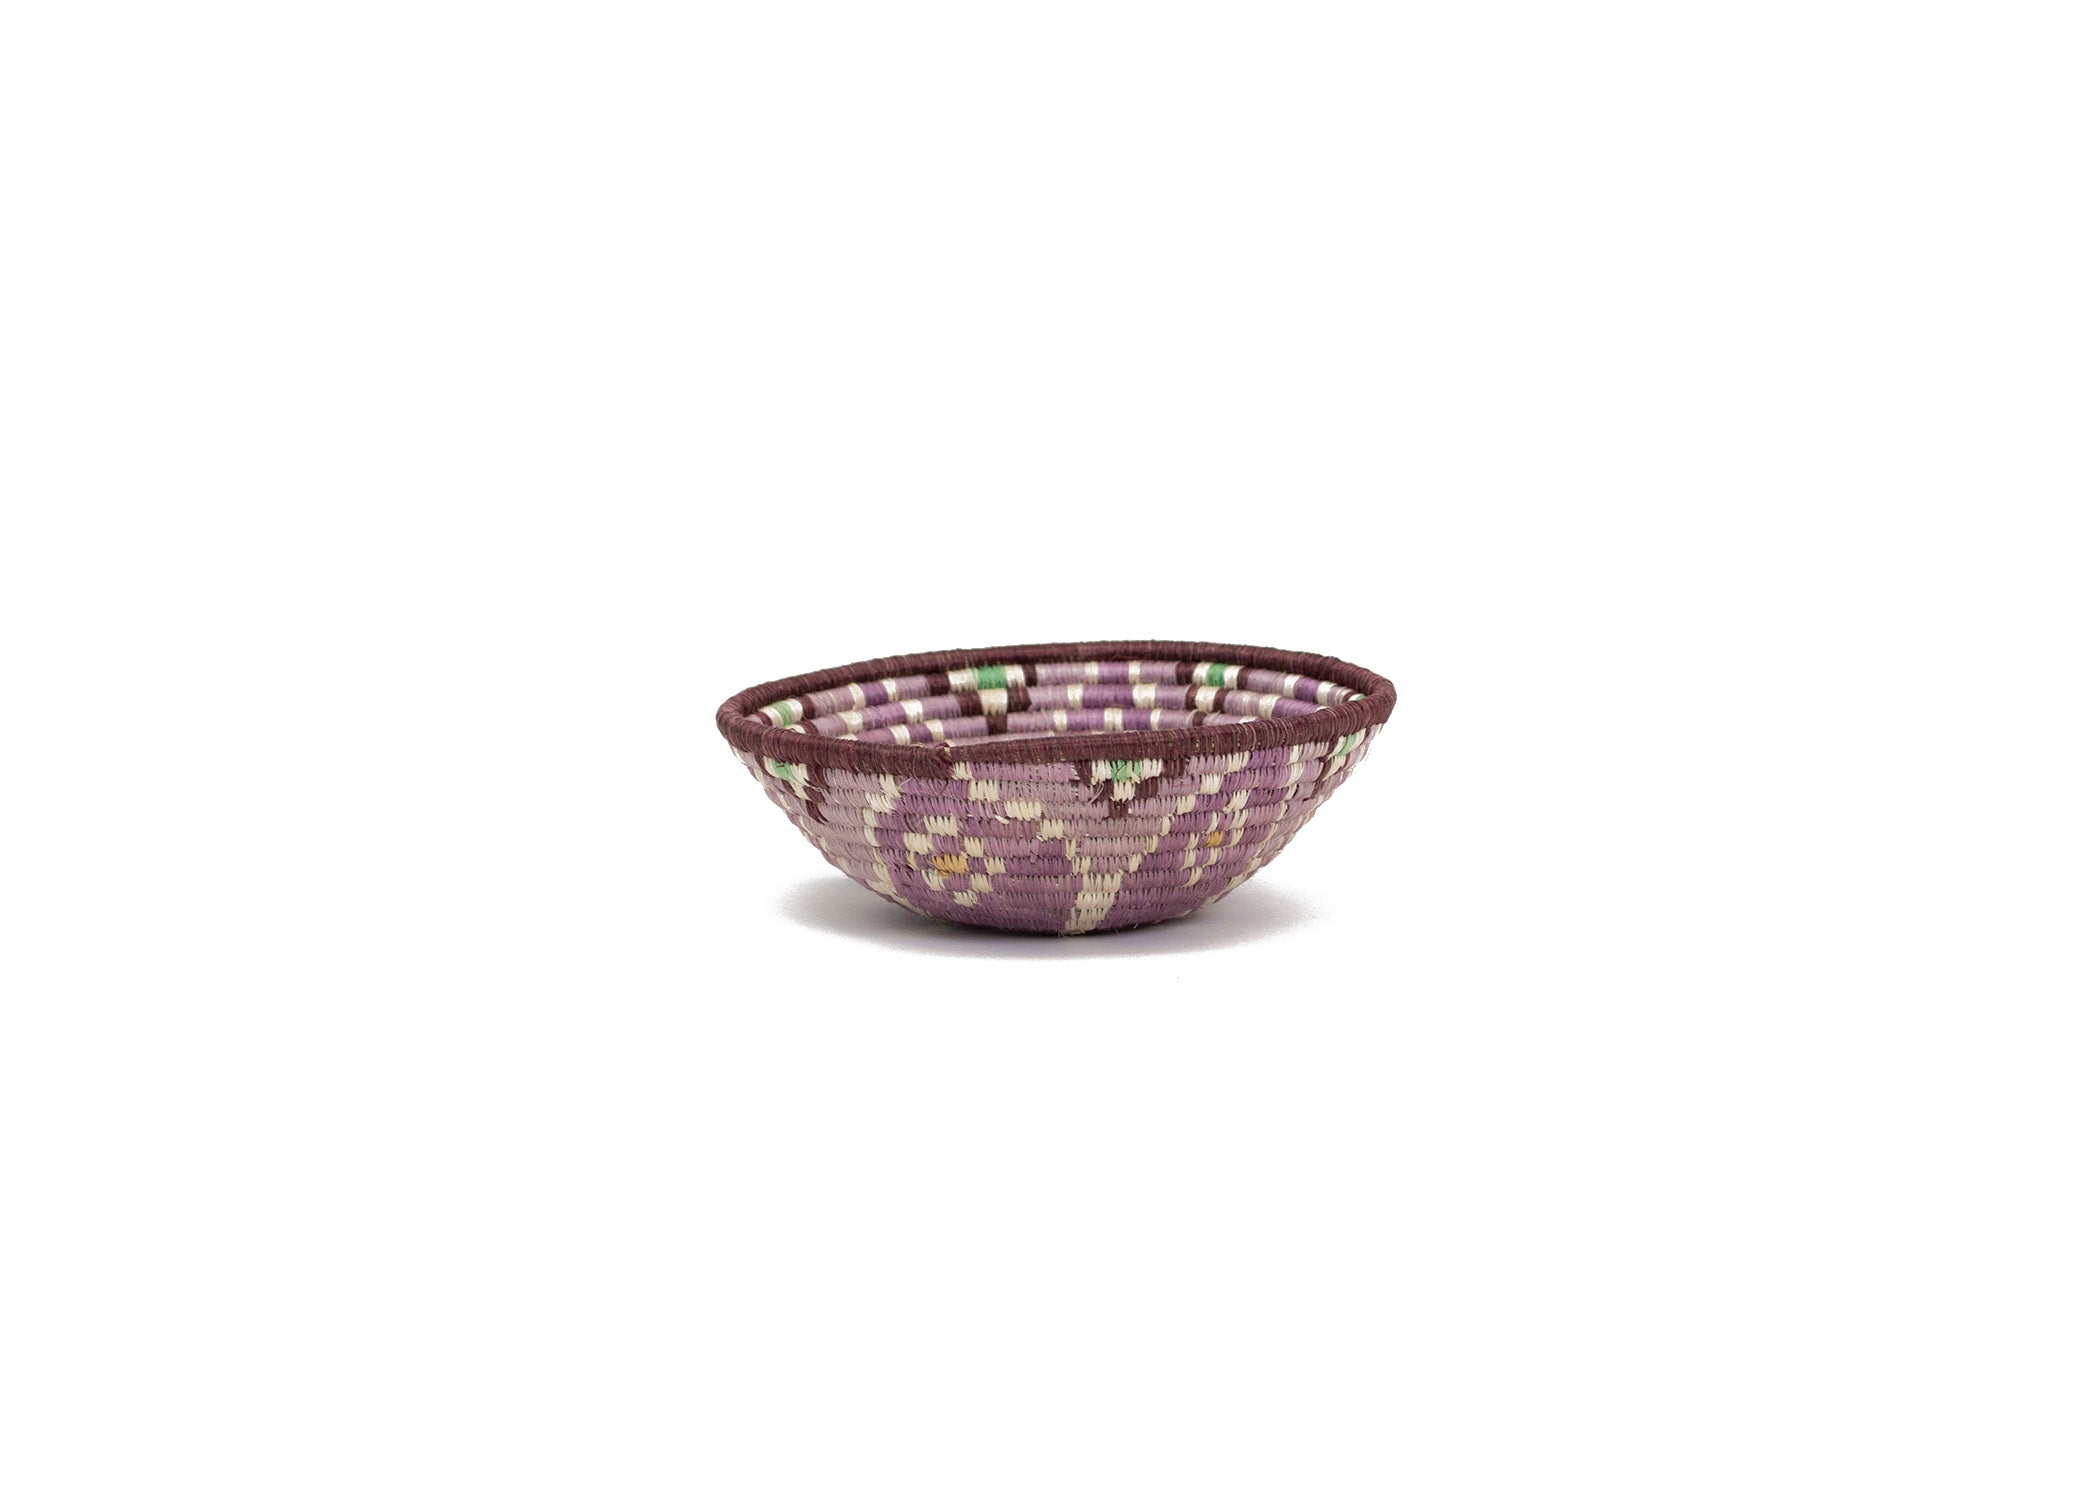 Small Dusty Rose Ikaze Bowl - KAZI - Artisan made high quality home decor and wall art